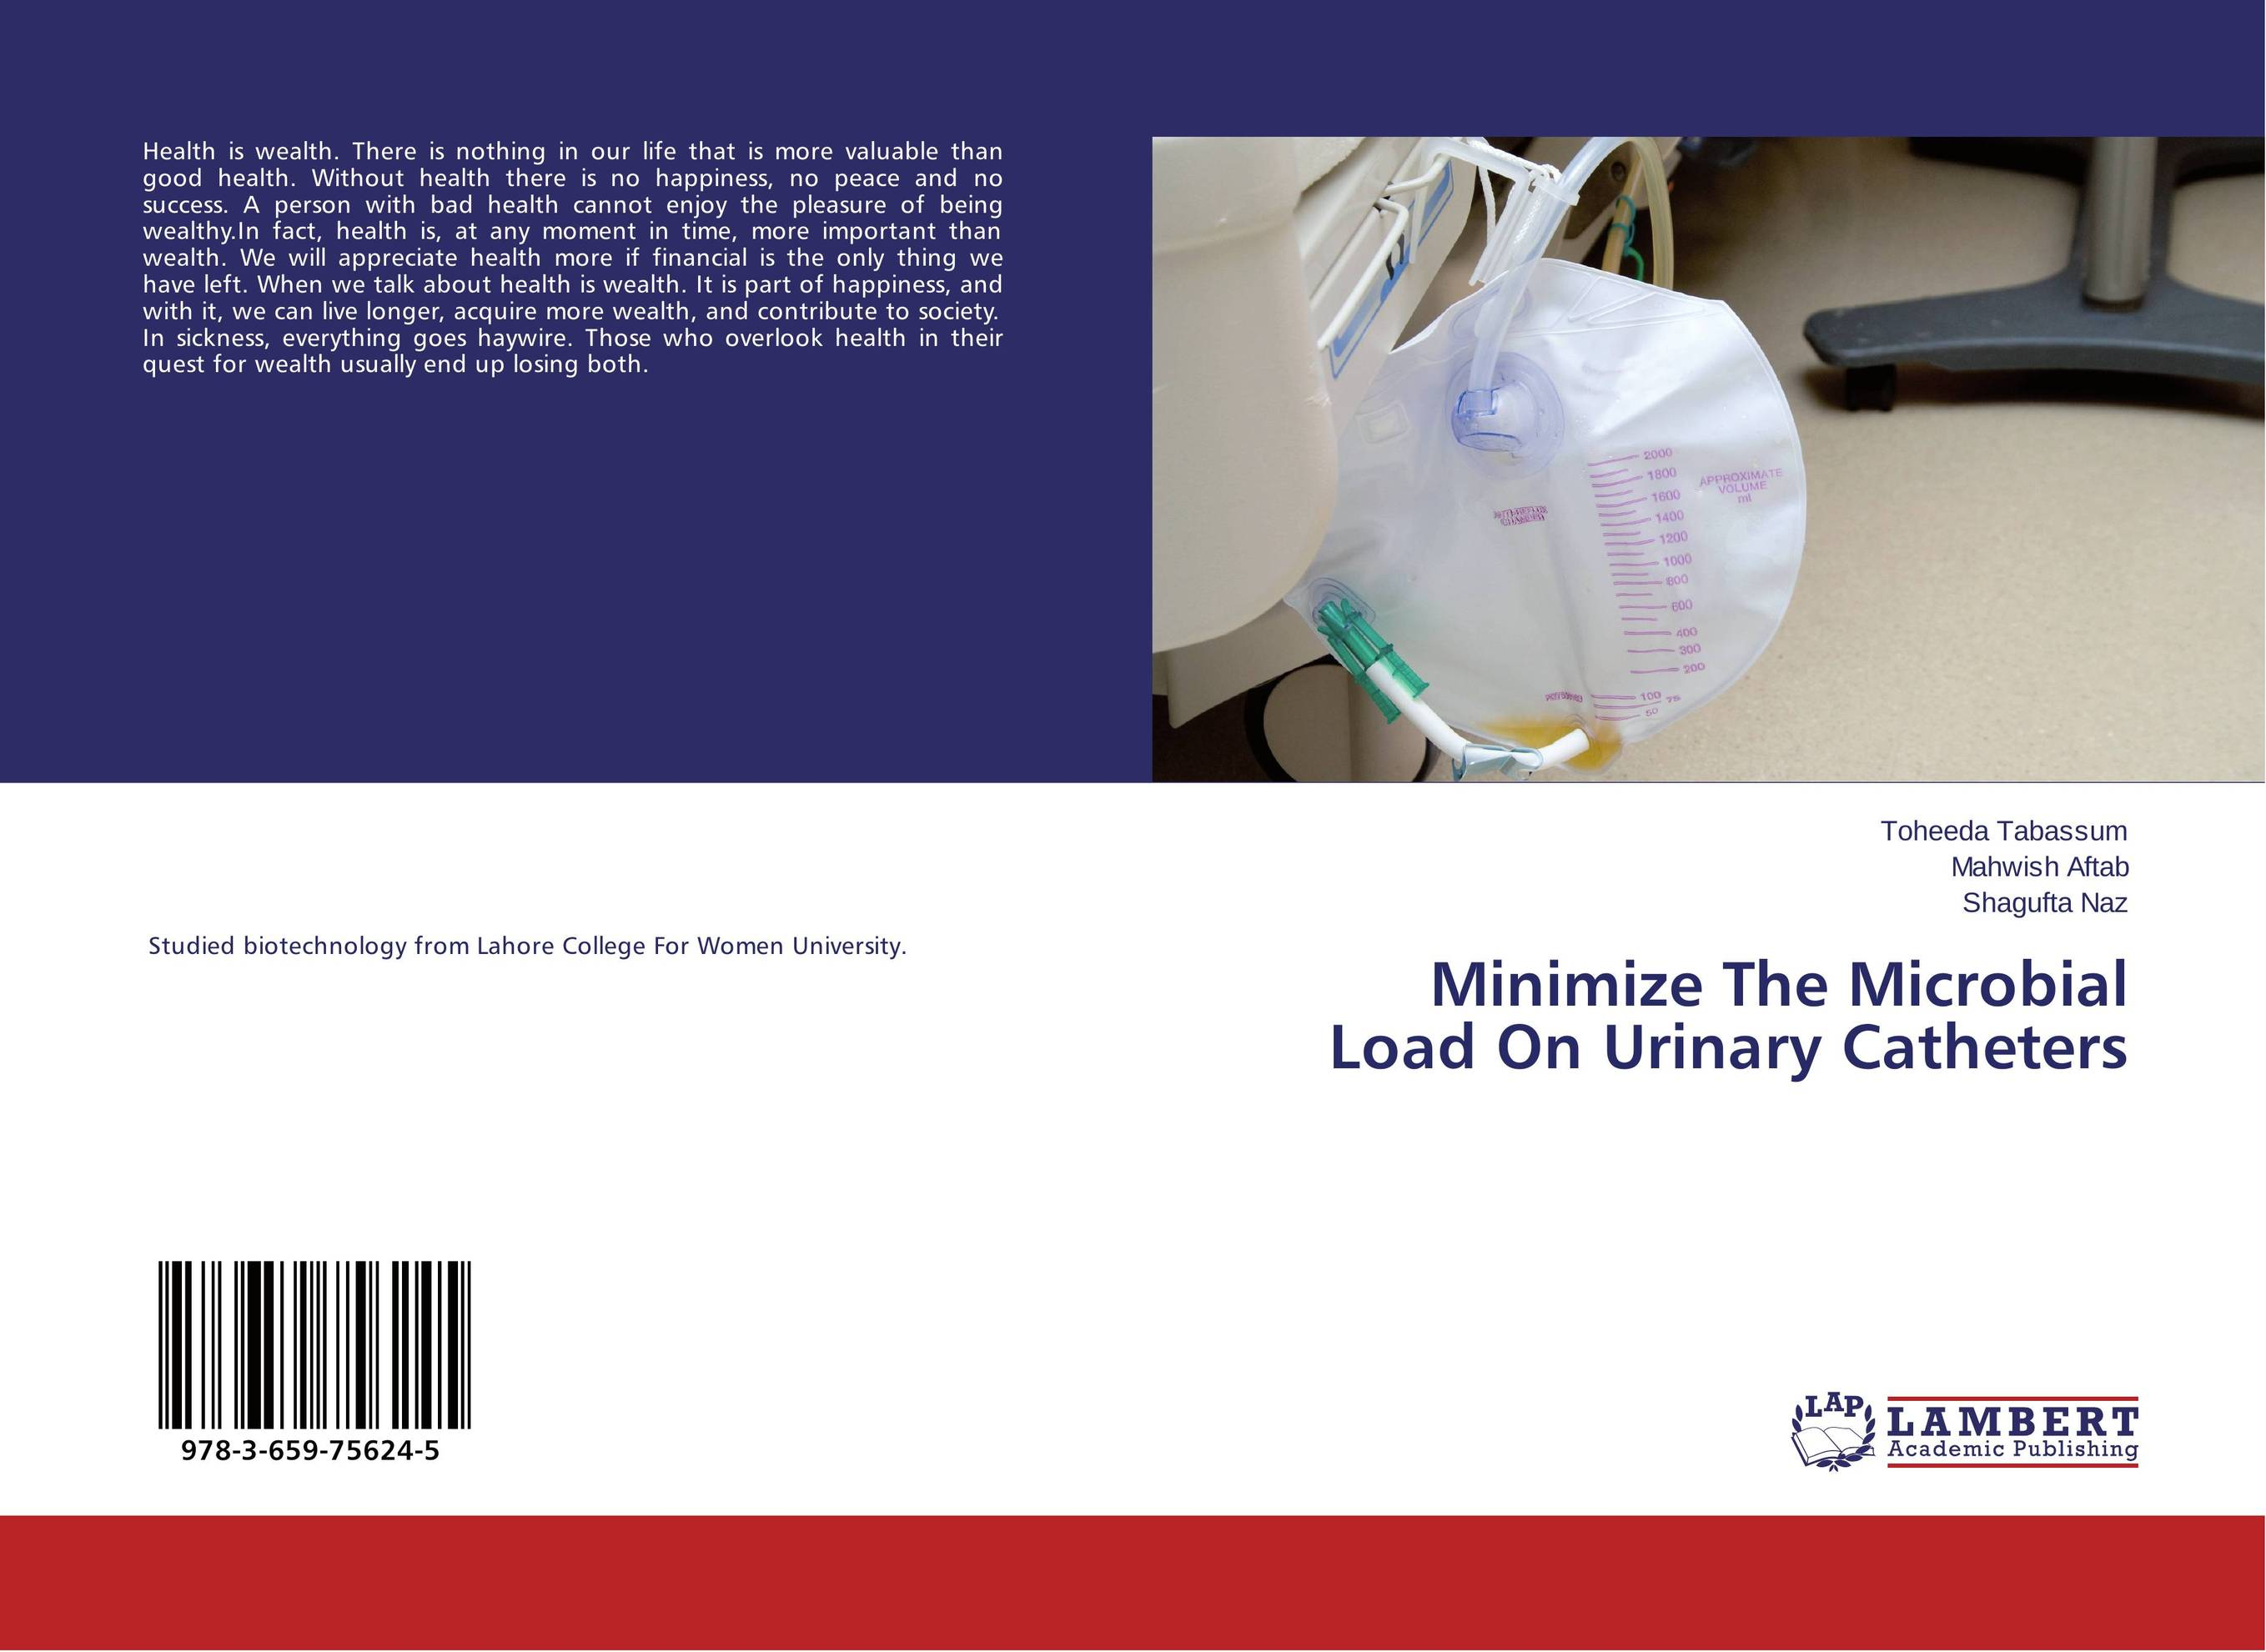 Minimize The Microbial Load On Urinary Catheters kenneth rosen d investing in income properties the big six formula for achieving wealth in real estate